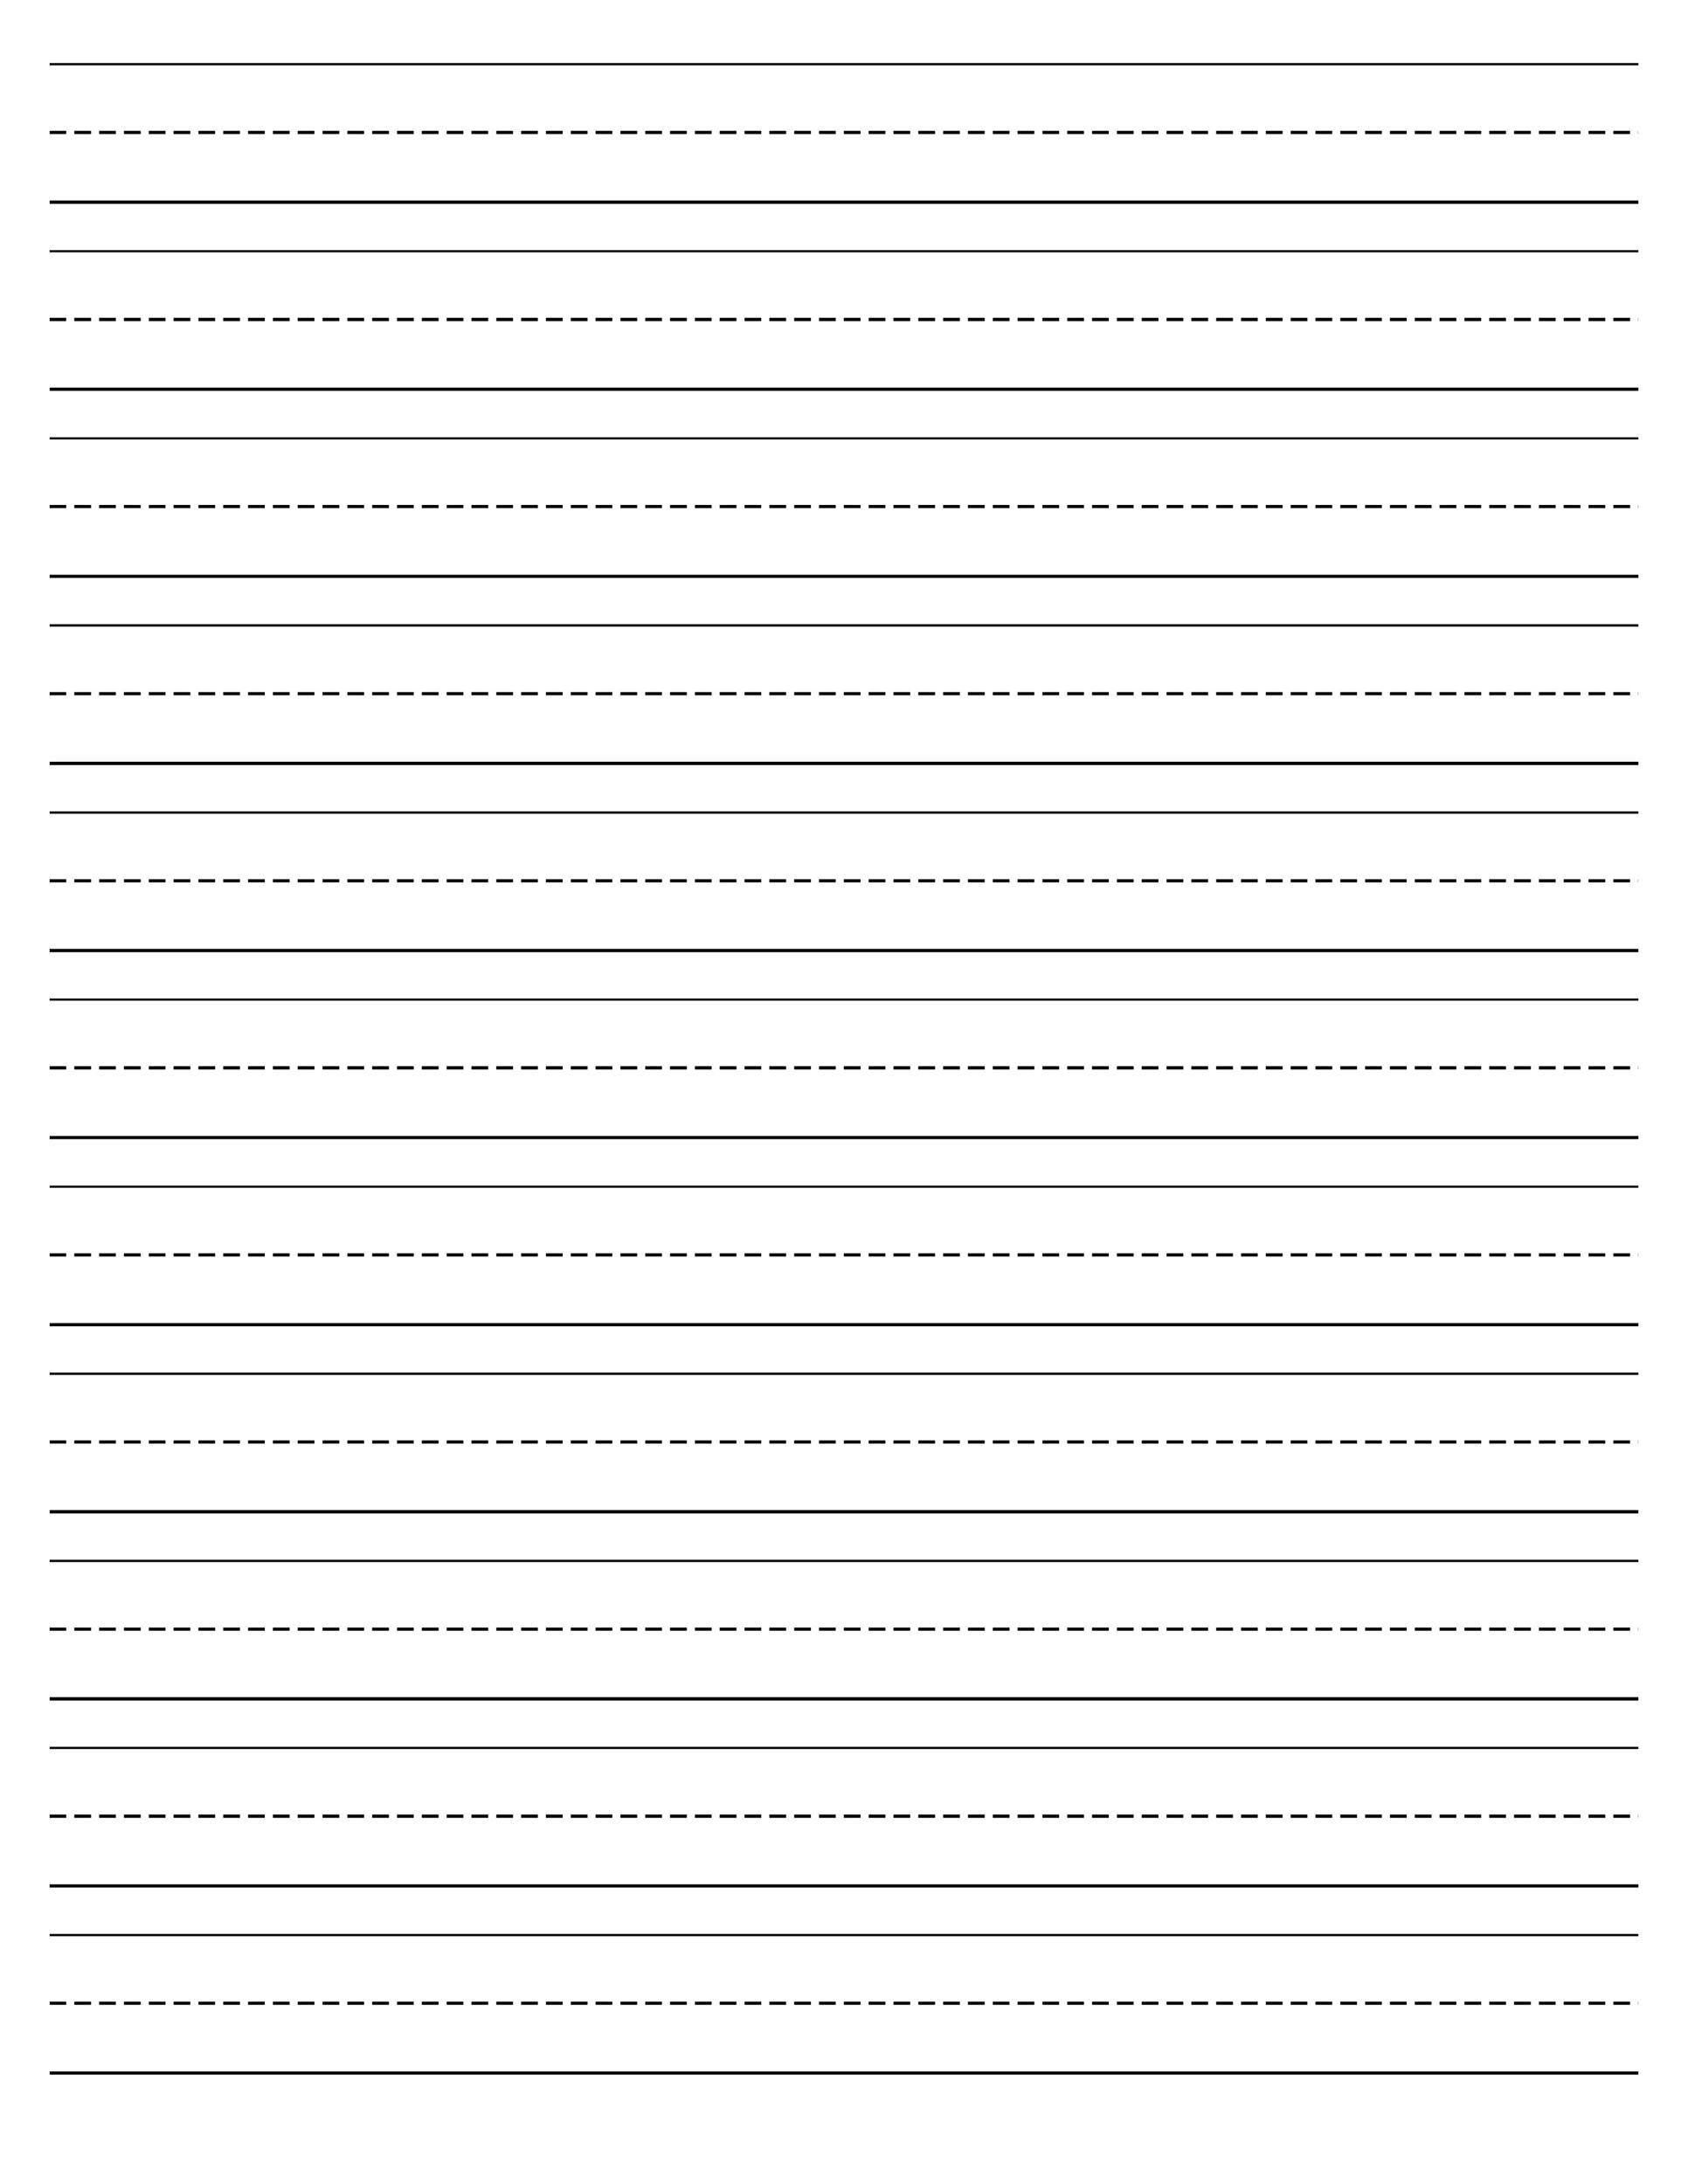 Lined Paper Writing